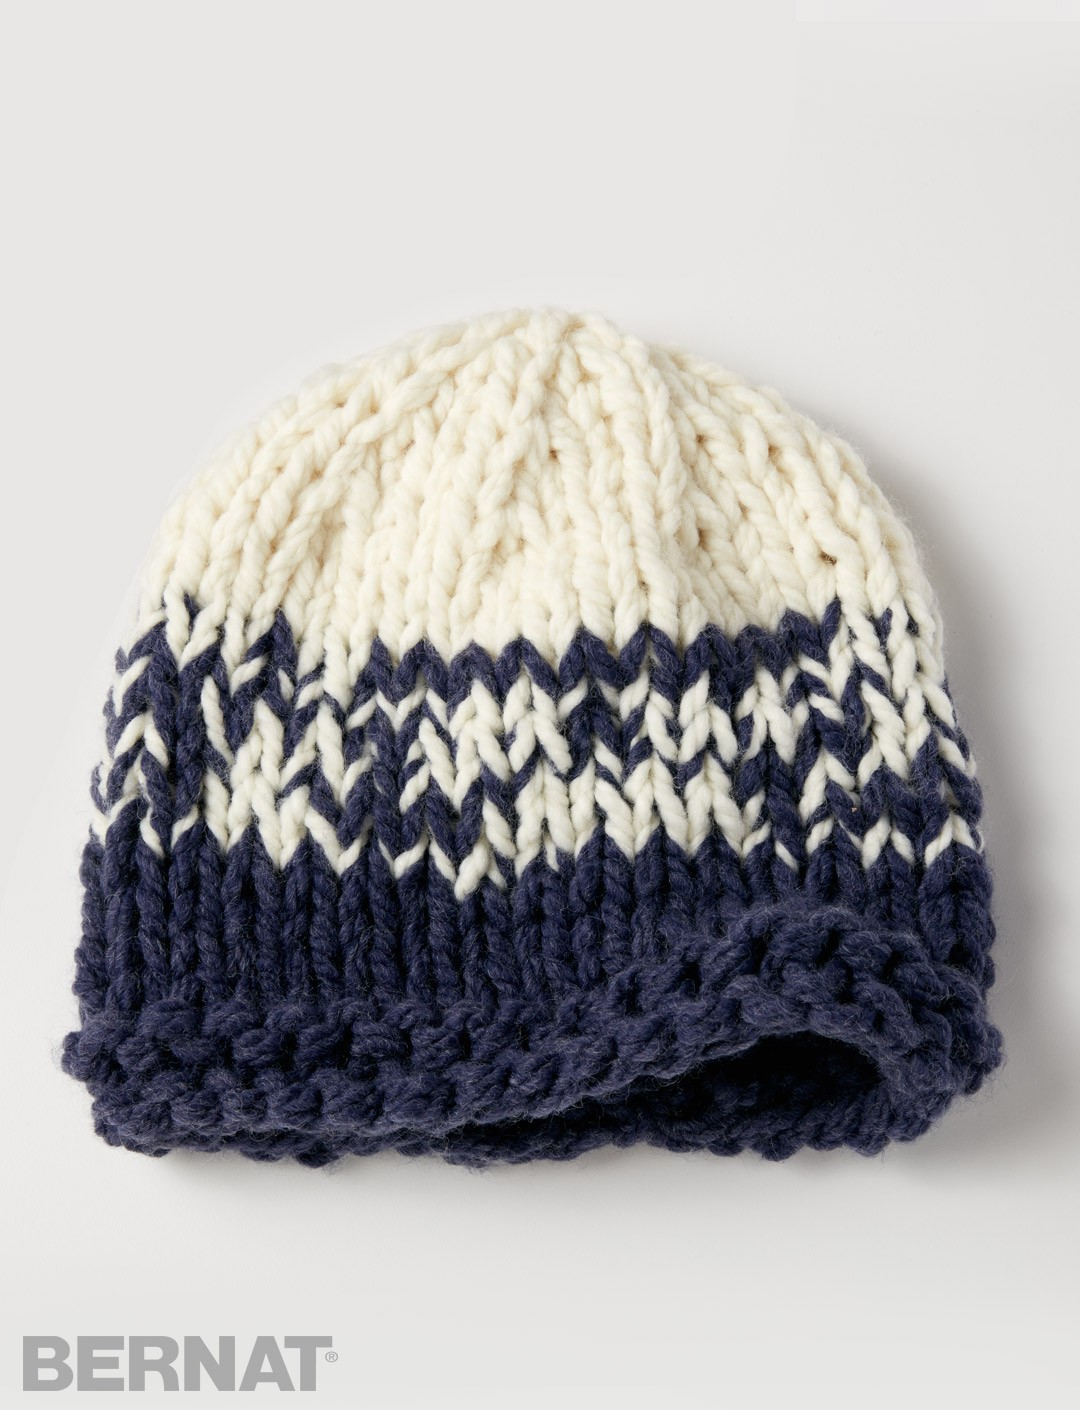 Free Knitting Pattern Hat Bulky Yarn : Bernat Bulky Gradient Hat, Knit Pattern Yarnspirations